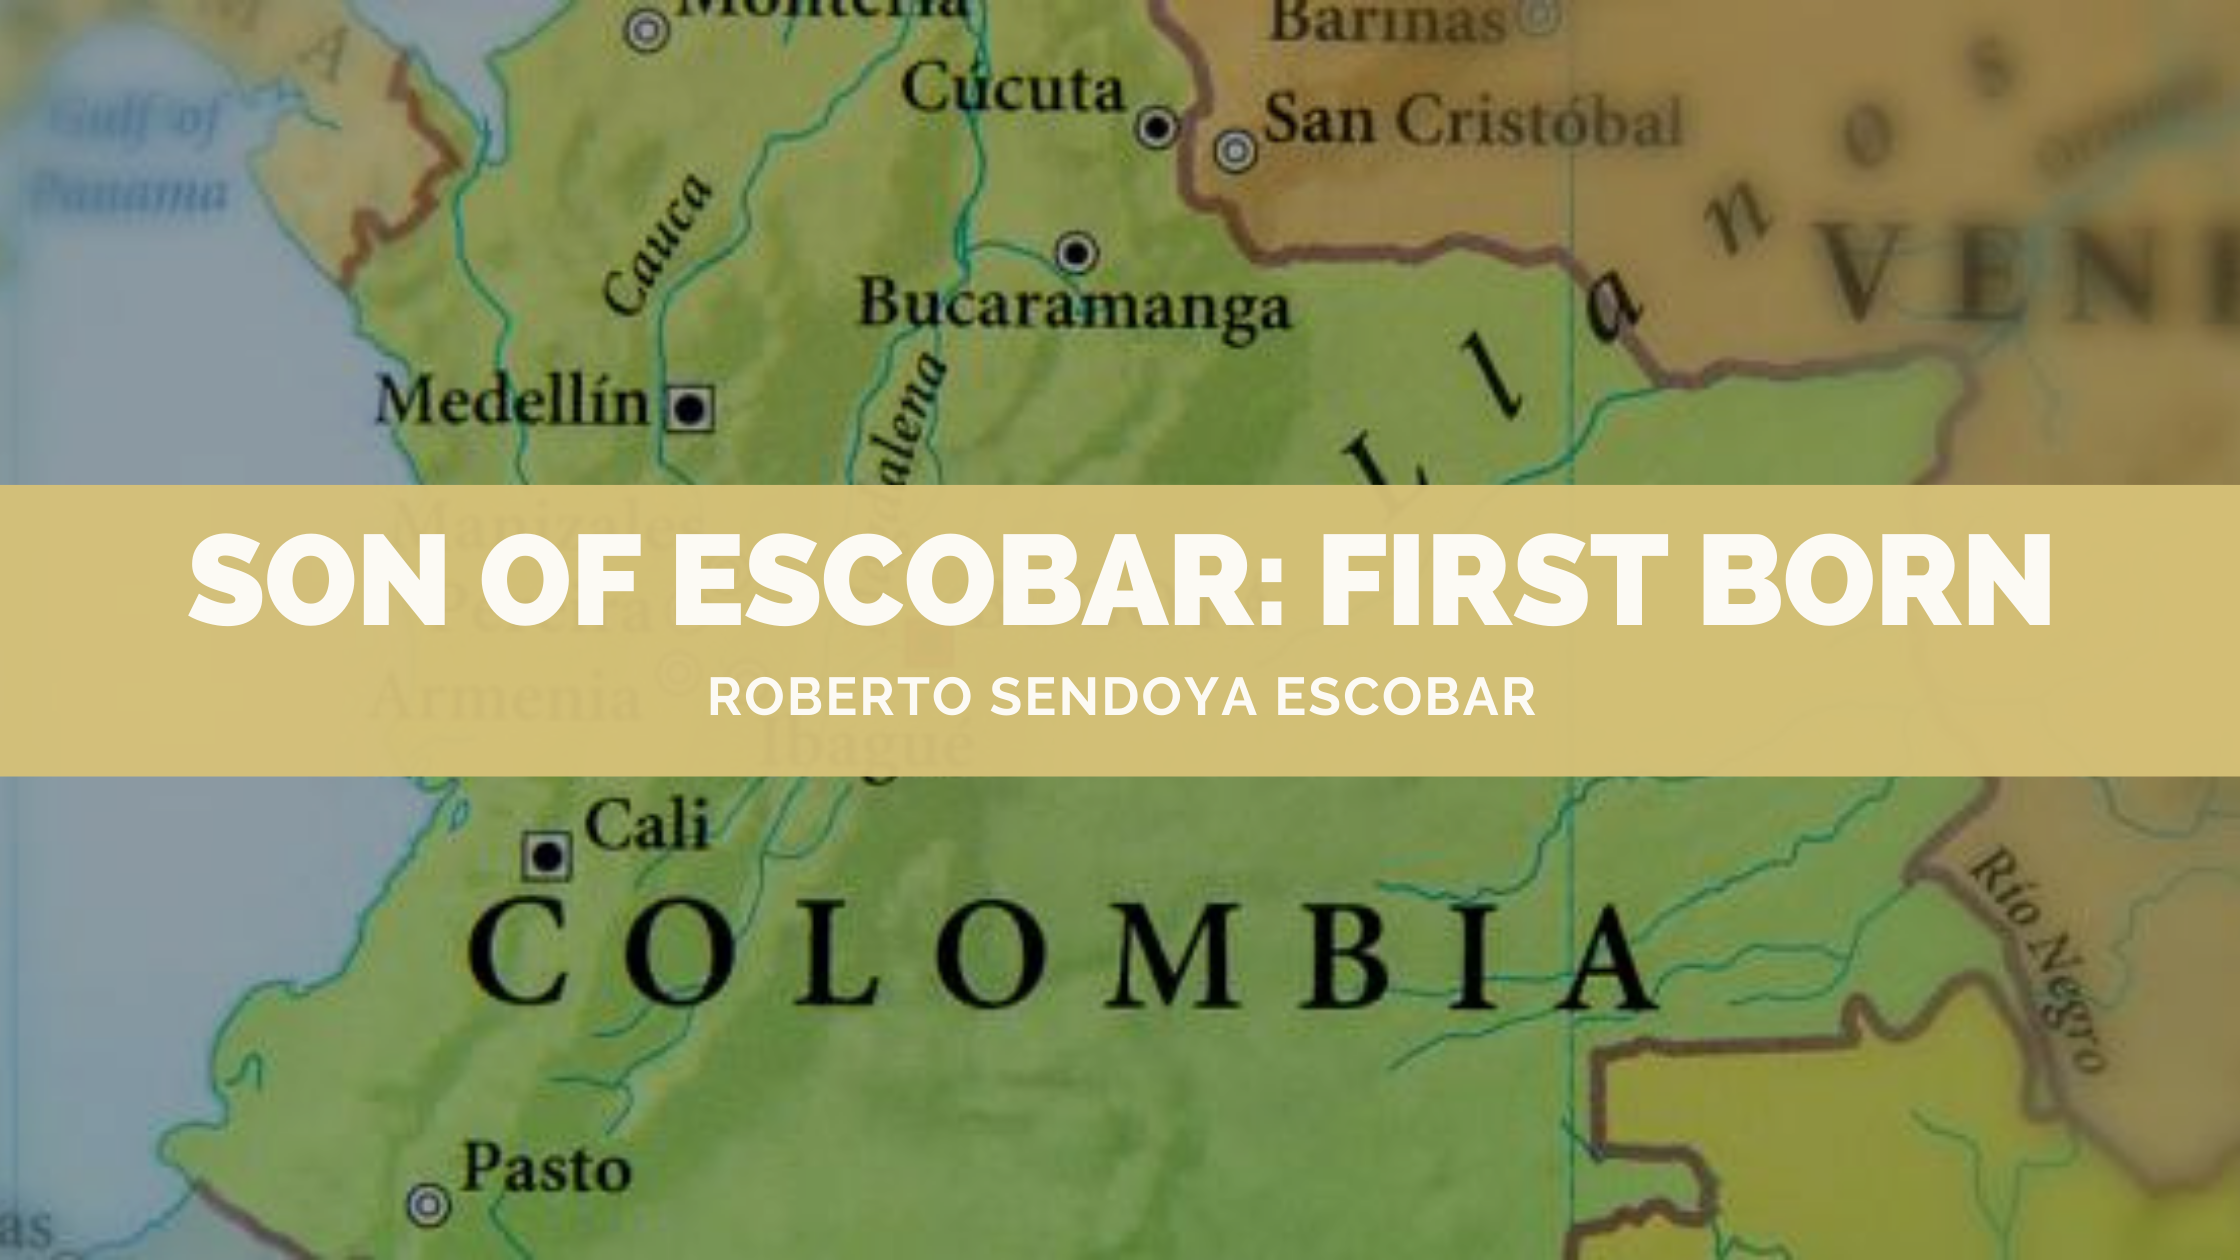 Son of Escobar: First Born is a book by Roberto Sendoya Escobar who claims to be the first born son of the infamous drug lord, Pablo Escobar